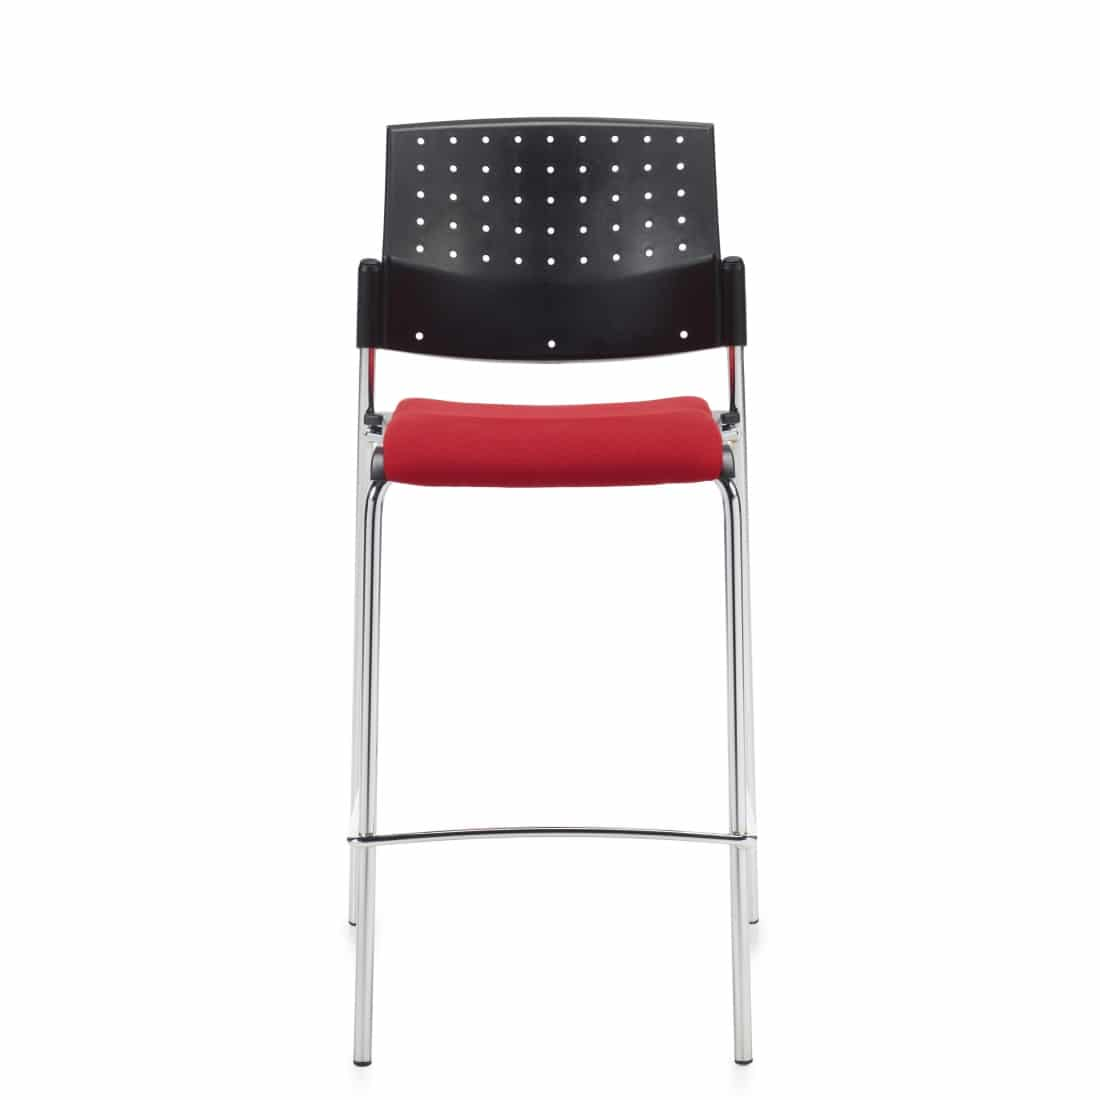 Armless Bar Stool, Red Upholstered Seat & Black Polypropylene Back With Chrome Frame (6559)